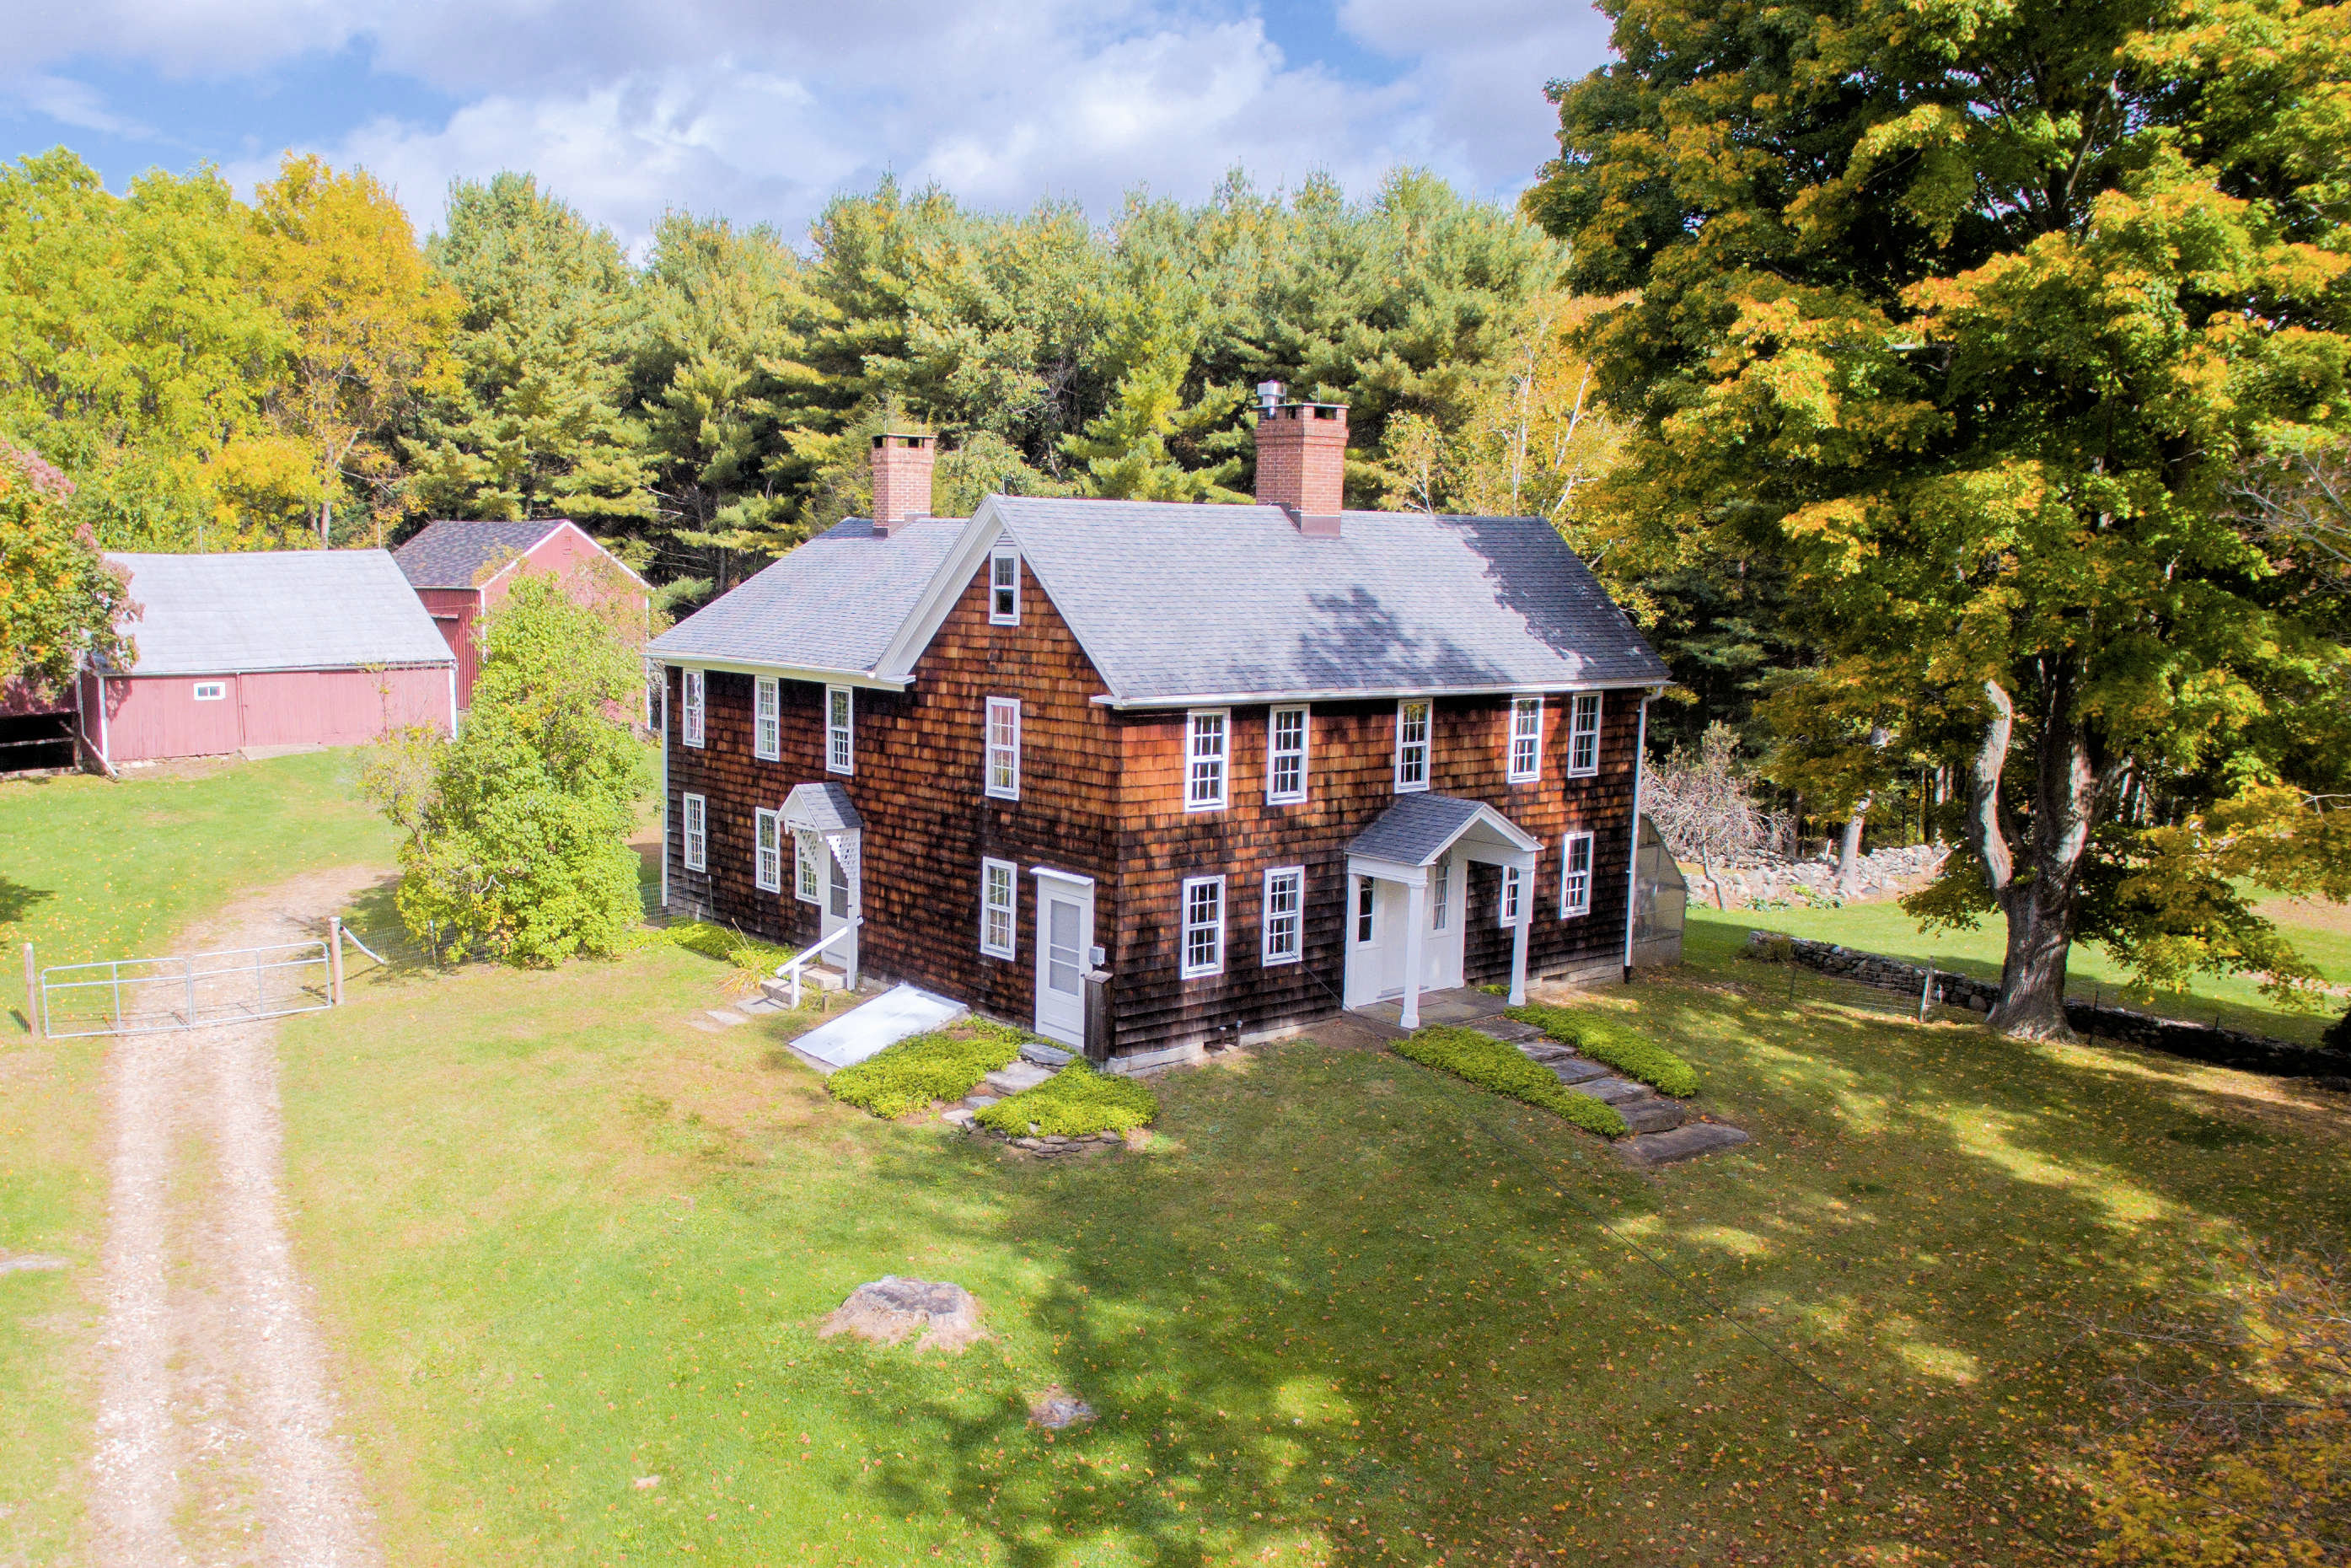 Property For Sale at 1700's Antique Colonial Farm on 99 Acres